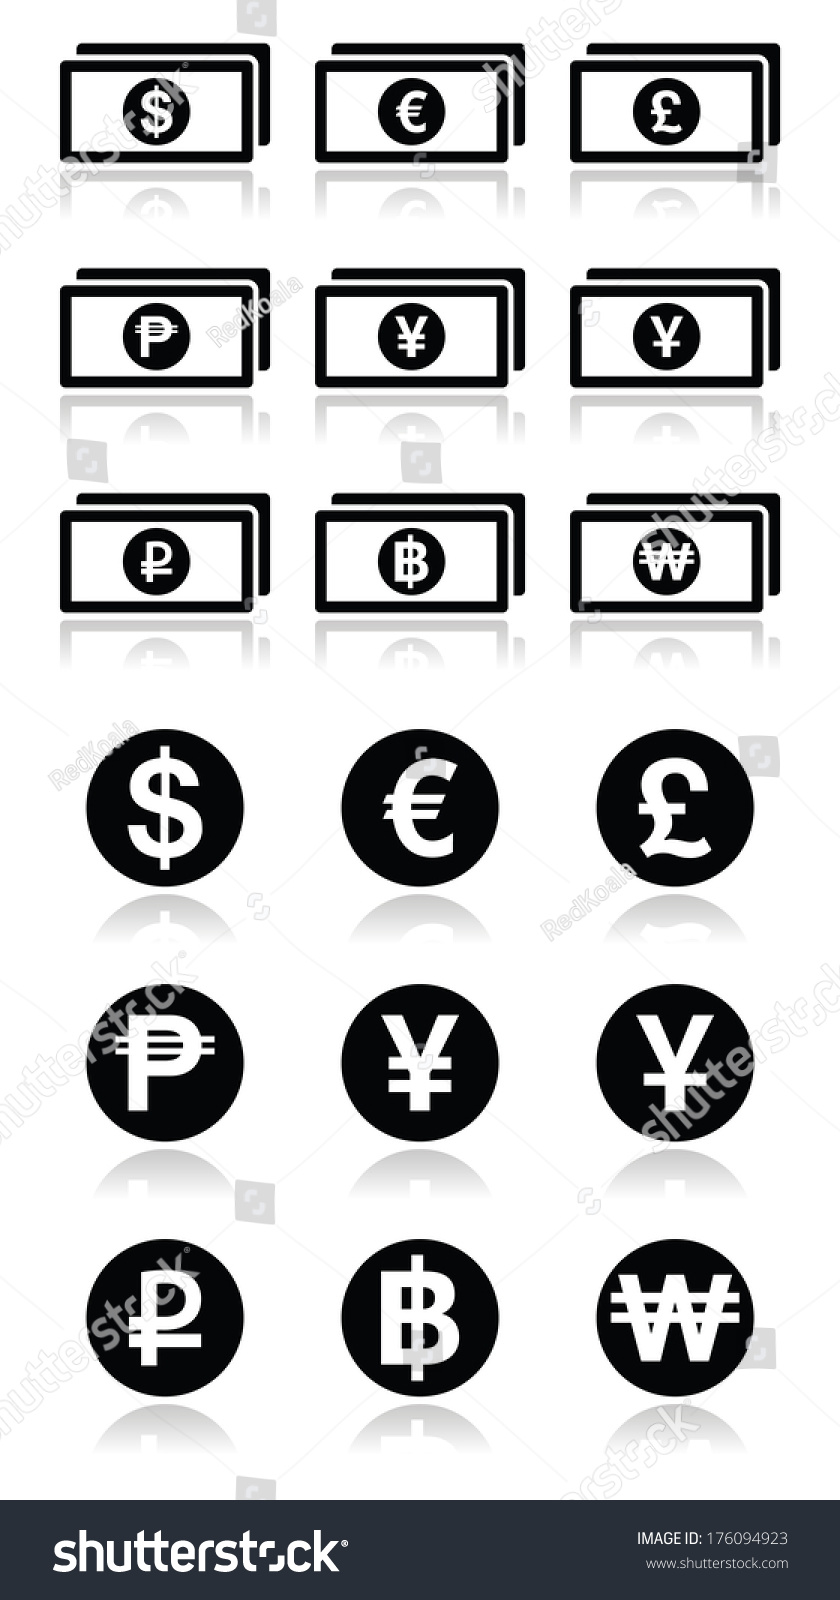 Currency Exchange Symbols Antoniaeyre7wtl